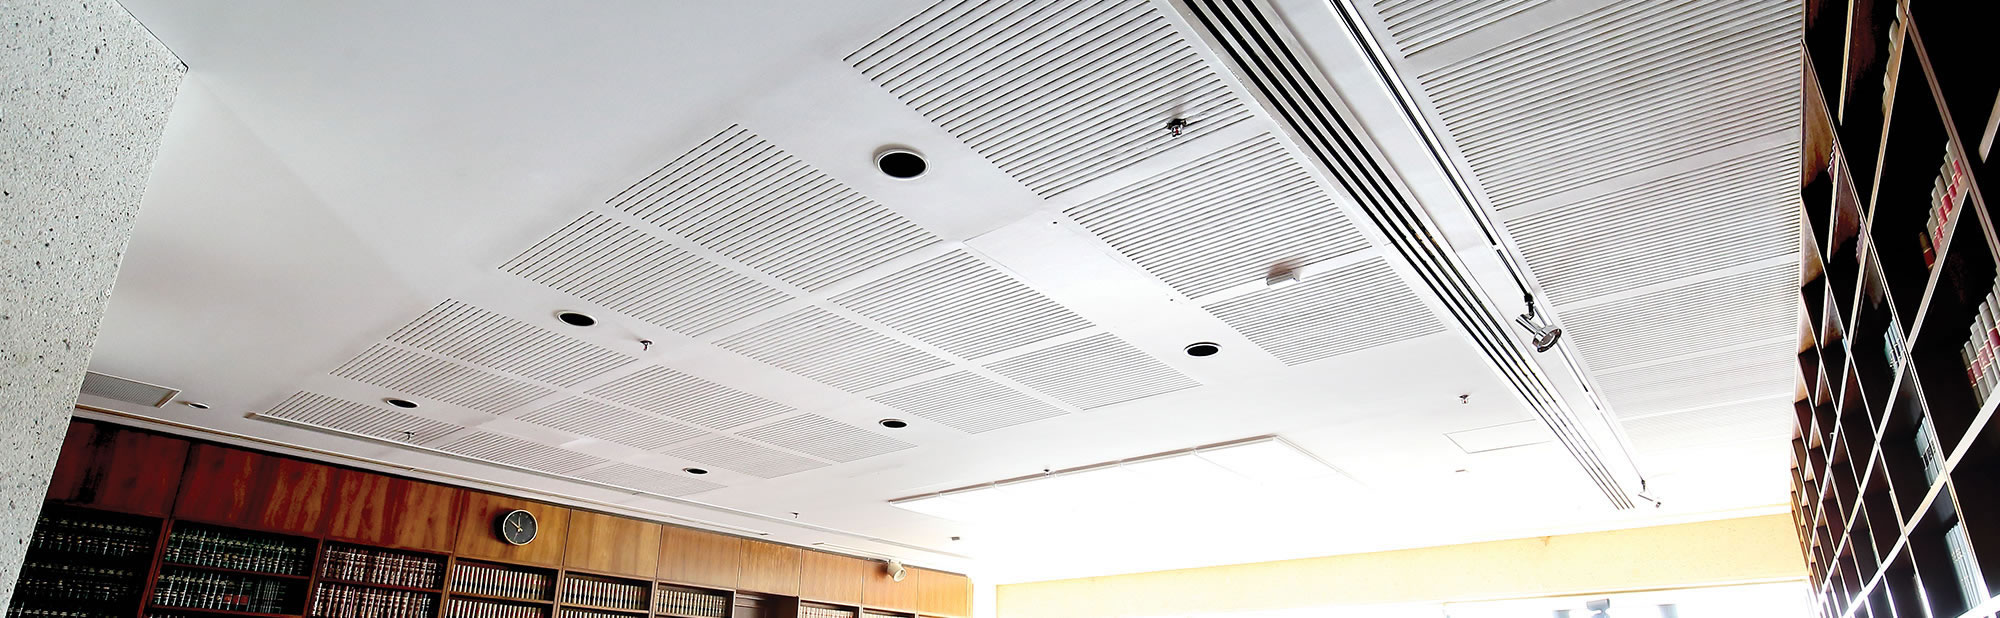 cheap ceiling of tile apartment soundproof acoustic tiles idea suspended wiki